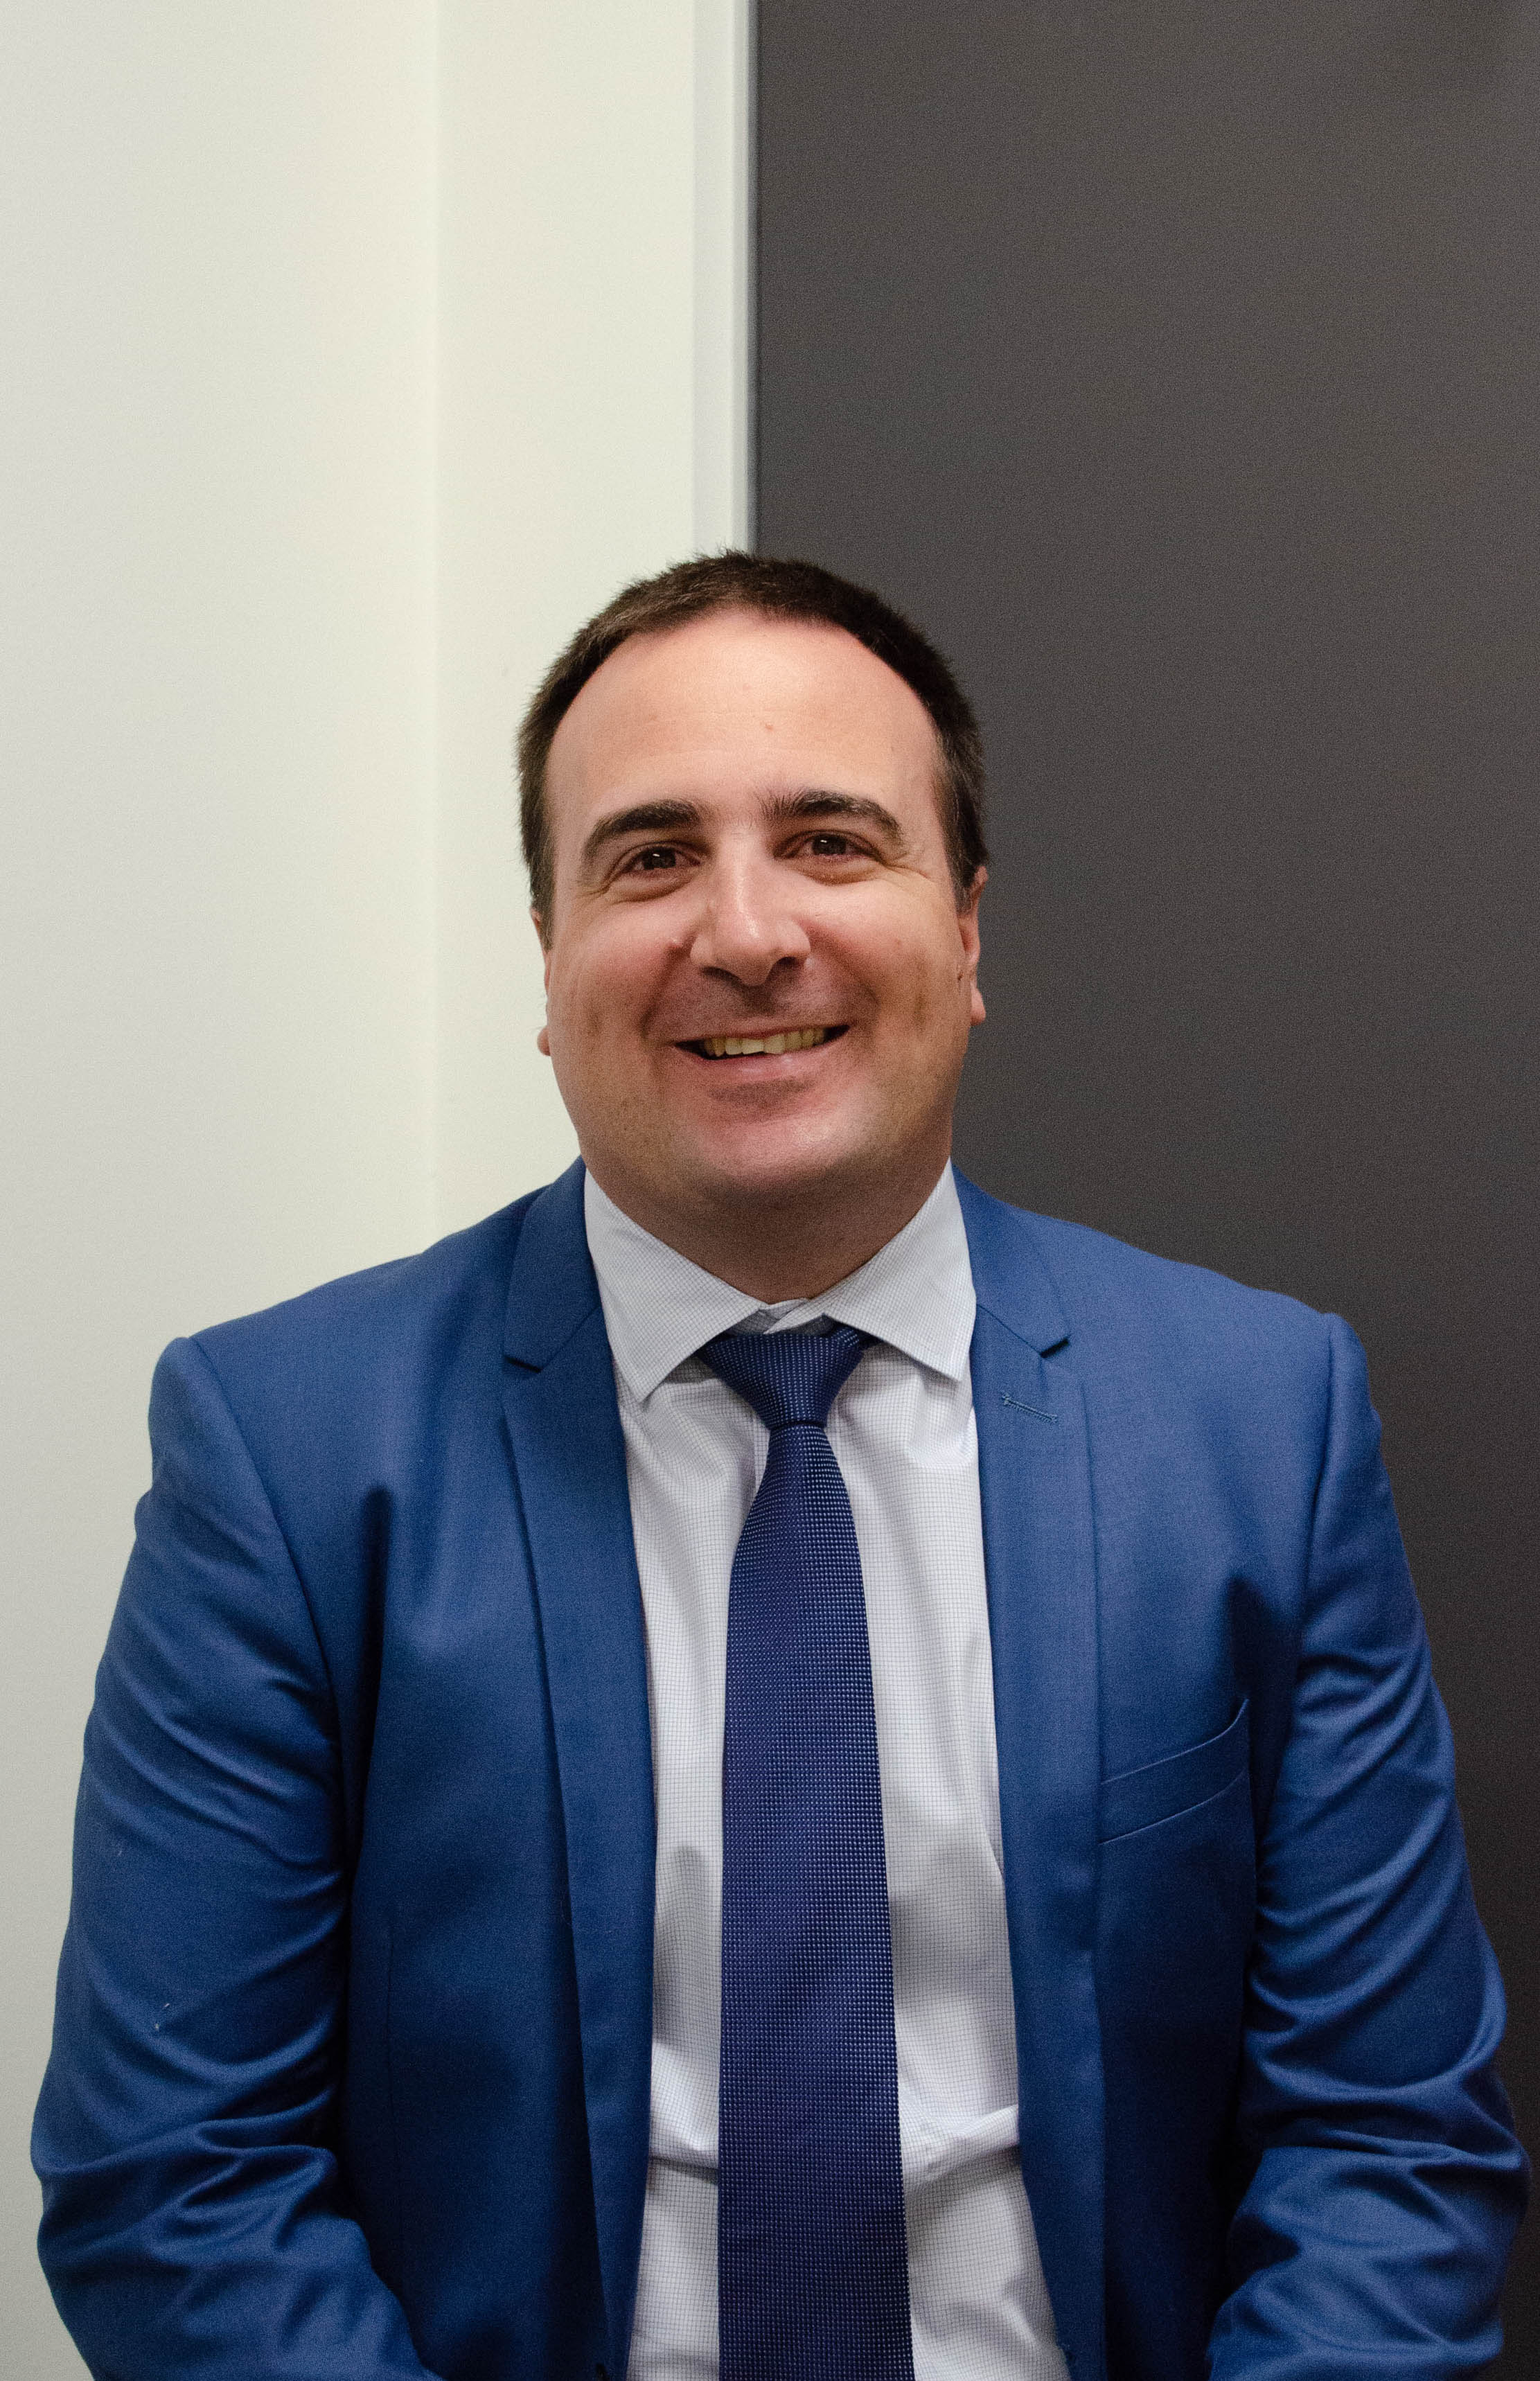 Brad Jolly - Brad has been a member of Frost Crane since it's inception on 1 July 2000. He is a registered Tax Agent and CPA.Having been a director of Frost Crane since 2015, Brad manages one of 3 teams within the firm, mainly responsible for the taxation and business advisory affairs of a range of small businesses using various structures. He has a particular interest in assisting small business clients in having the most suitable structure and minimising tax on sale of their business.Brad is happily married to Jessica with a dog named Rosie and a cat named Tango. He enjoys family holidays, taking Rosie for morning walks and catching up for a beer with mates.